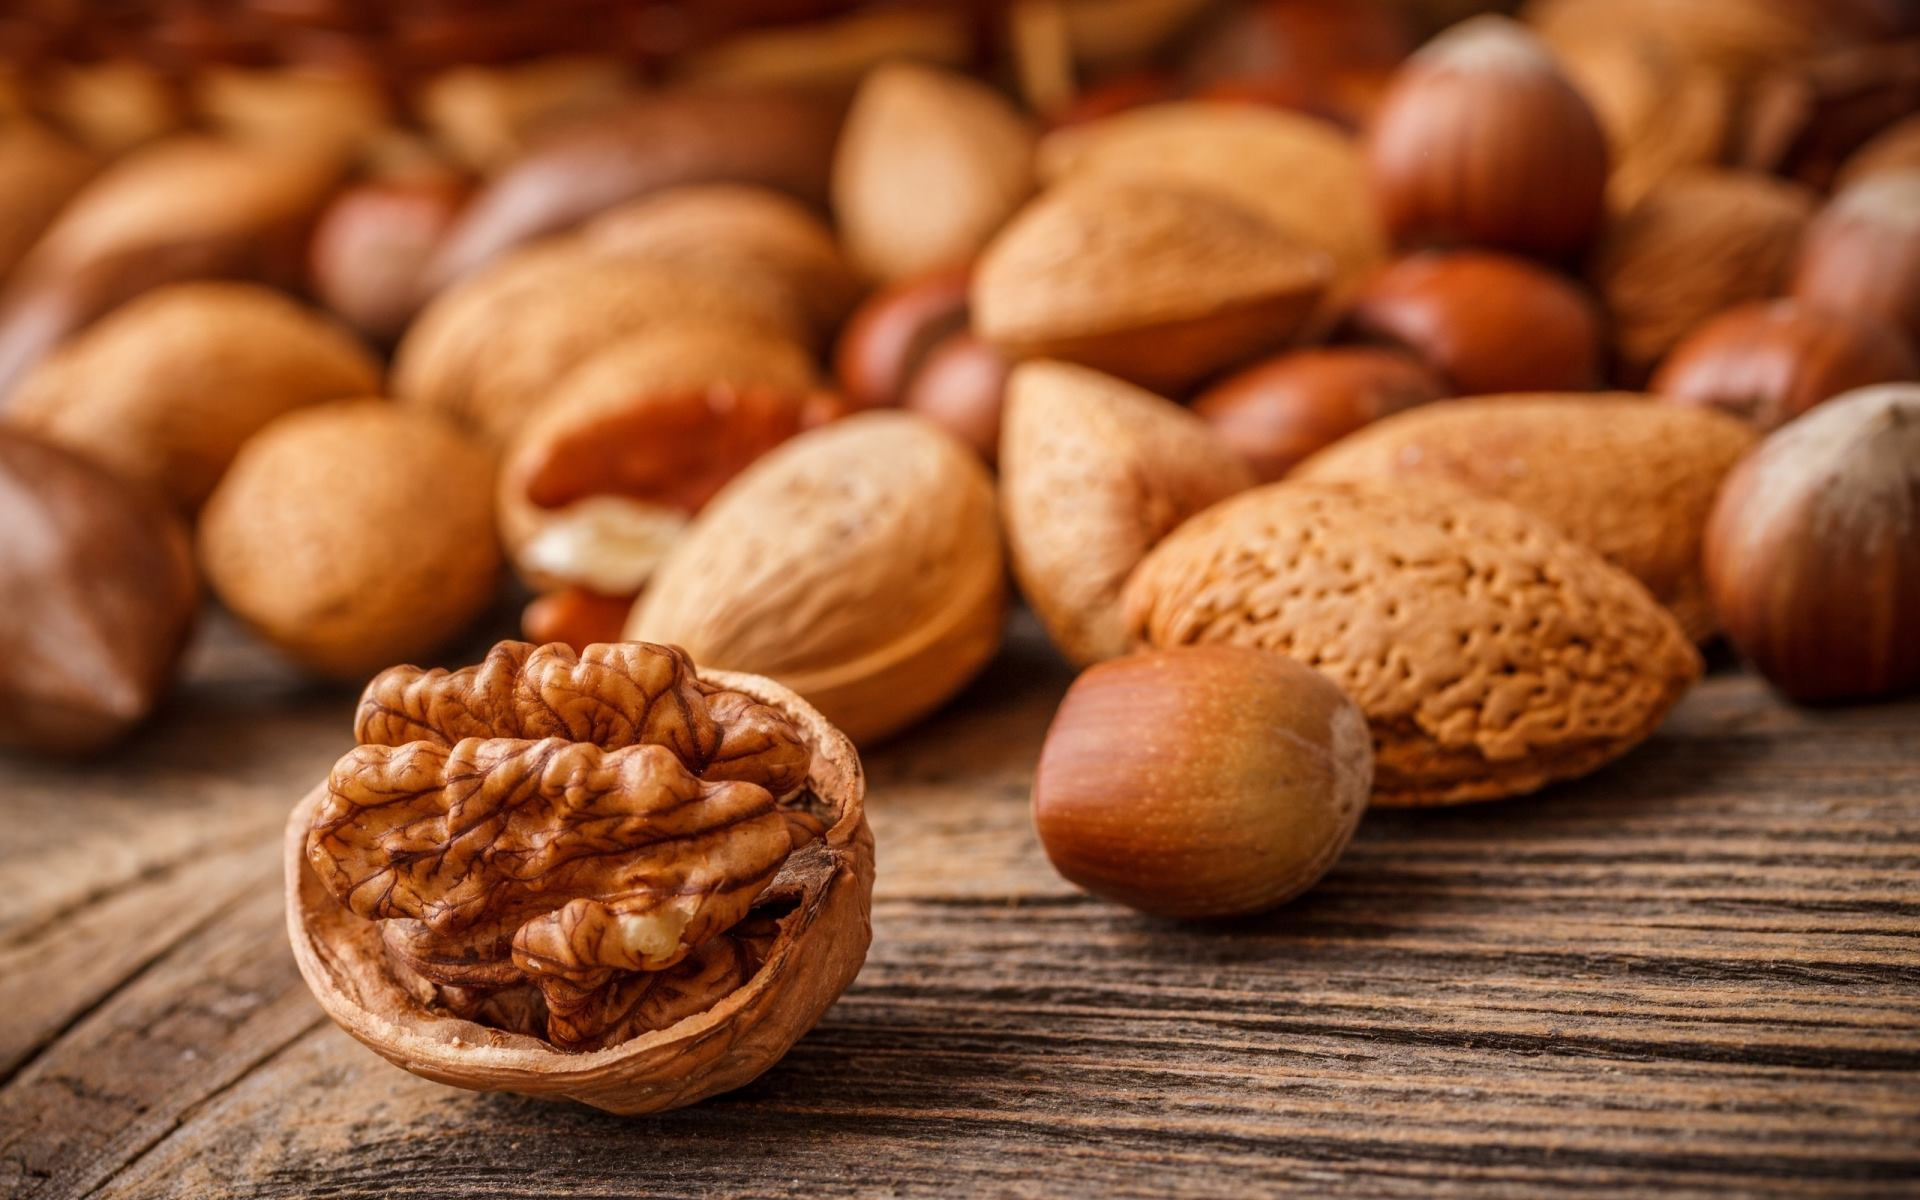 Dry Nuts Hd Free Image: 7 Excellent HD Walnut Wallpapers